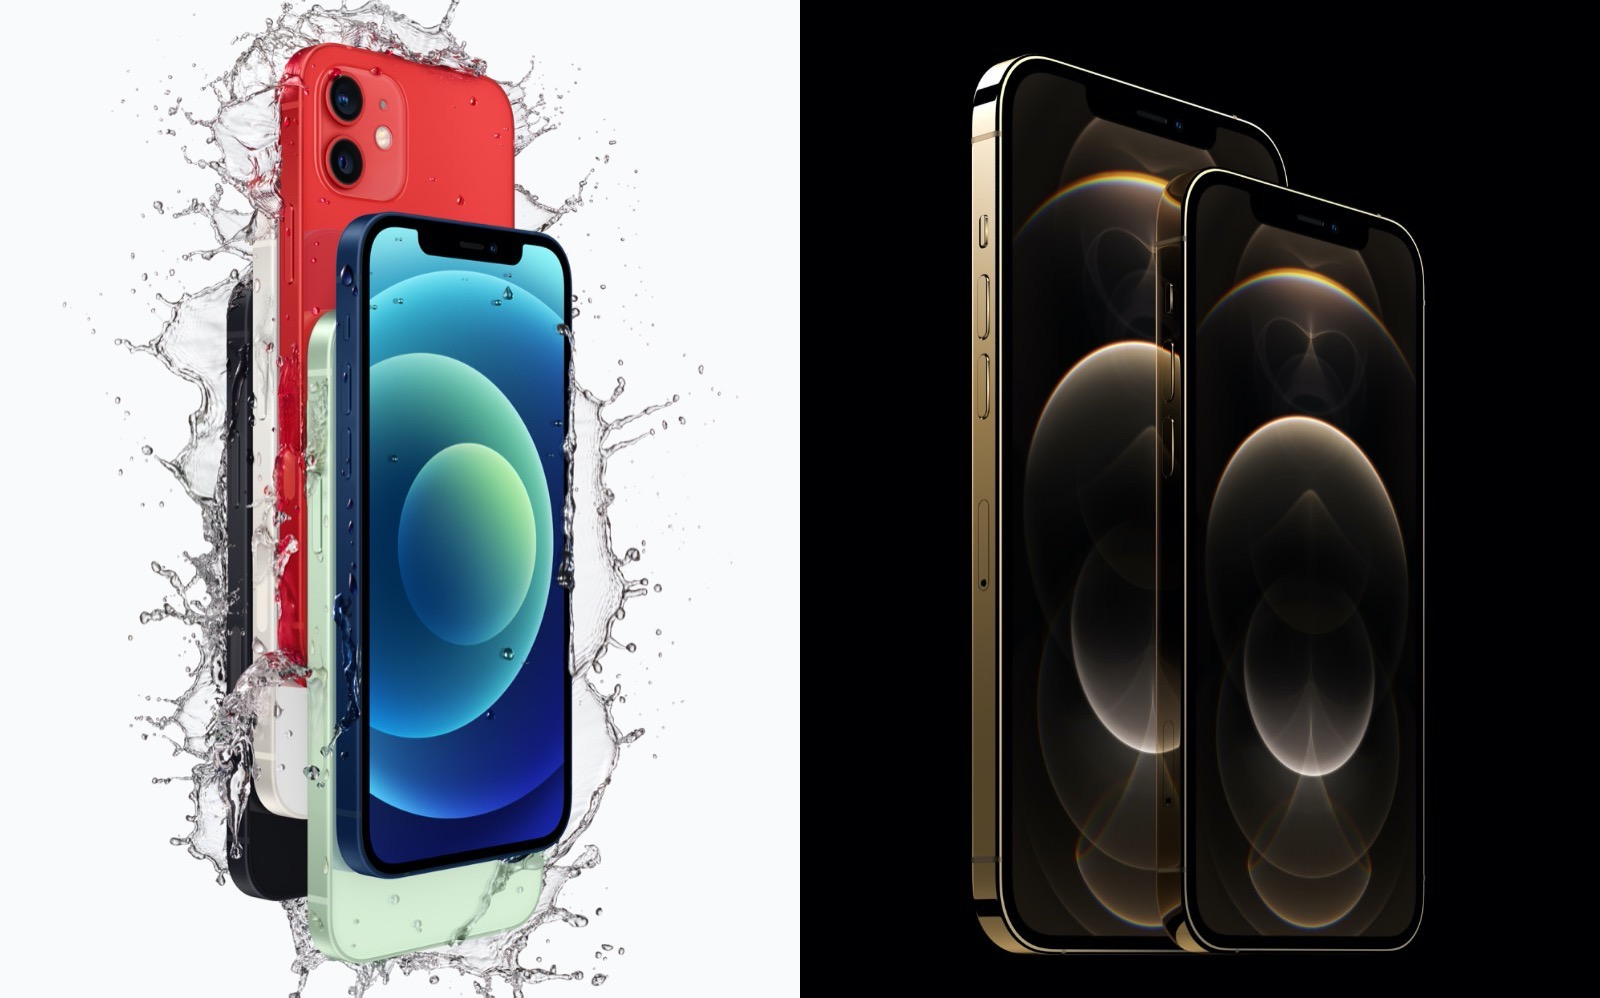 iPhone-12-series-comparison.jpg